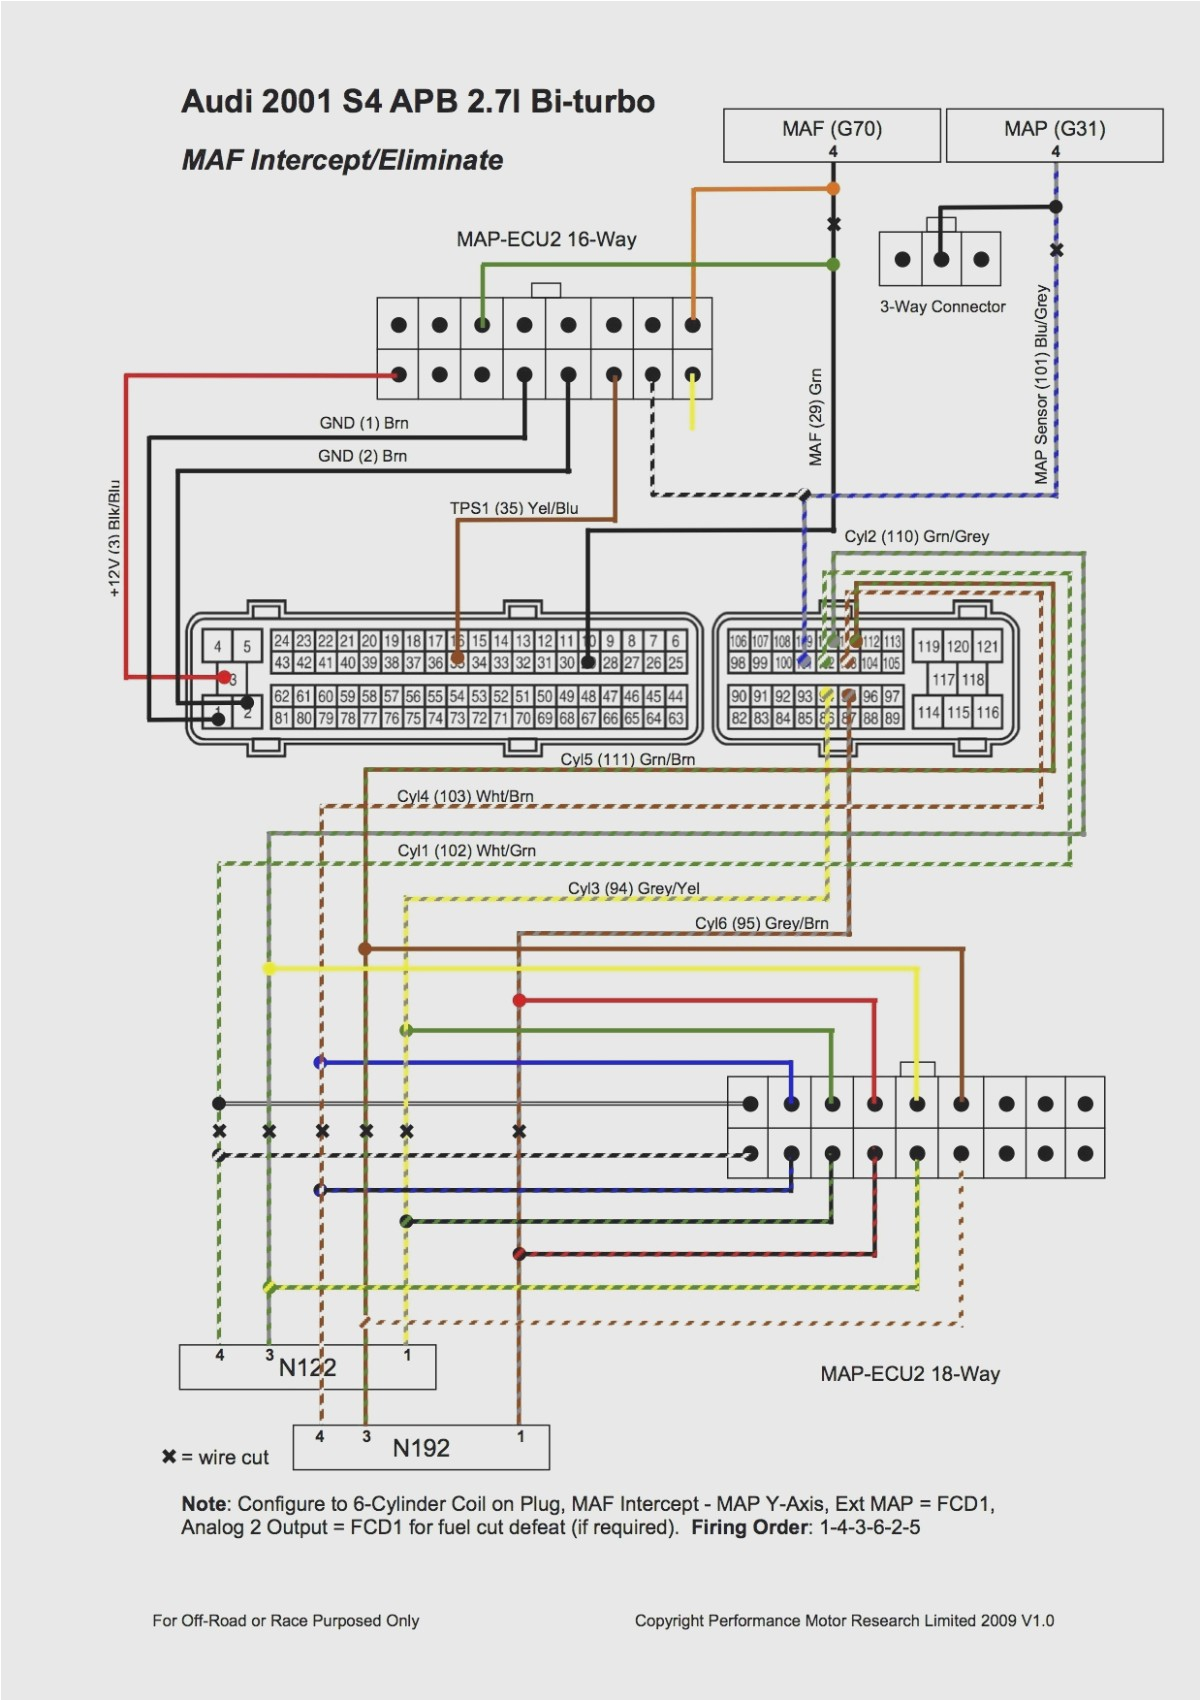 nx 7 wiring diagram along with car stereo wiring diagram along jvc kd r300 wiring diagram jpg